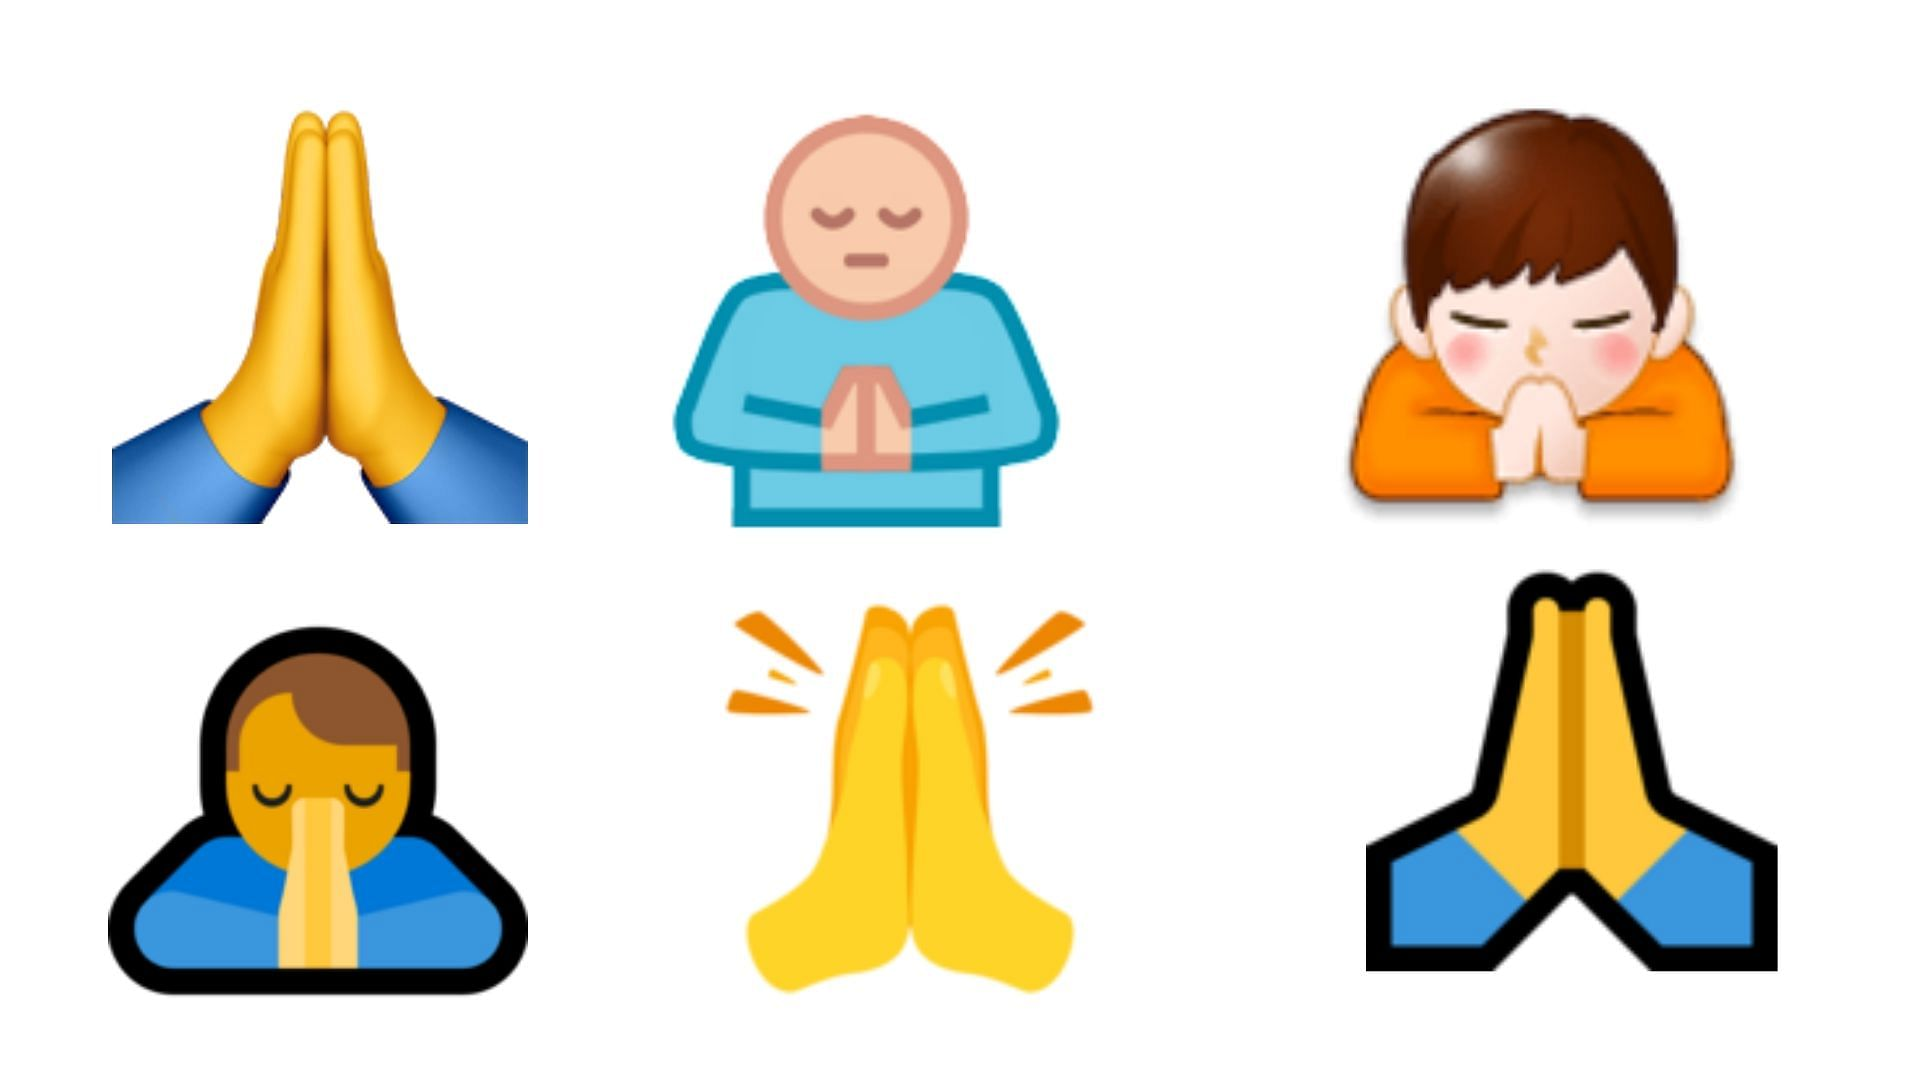 happy world emoji day 2019 prayer or high five the mystery behind folded hands emoji happy world emoji day 2019 prayer or